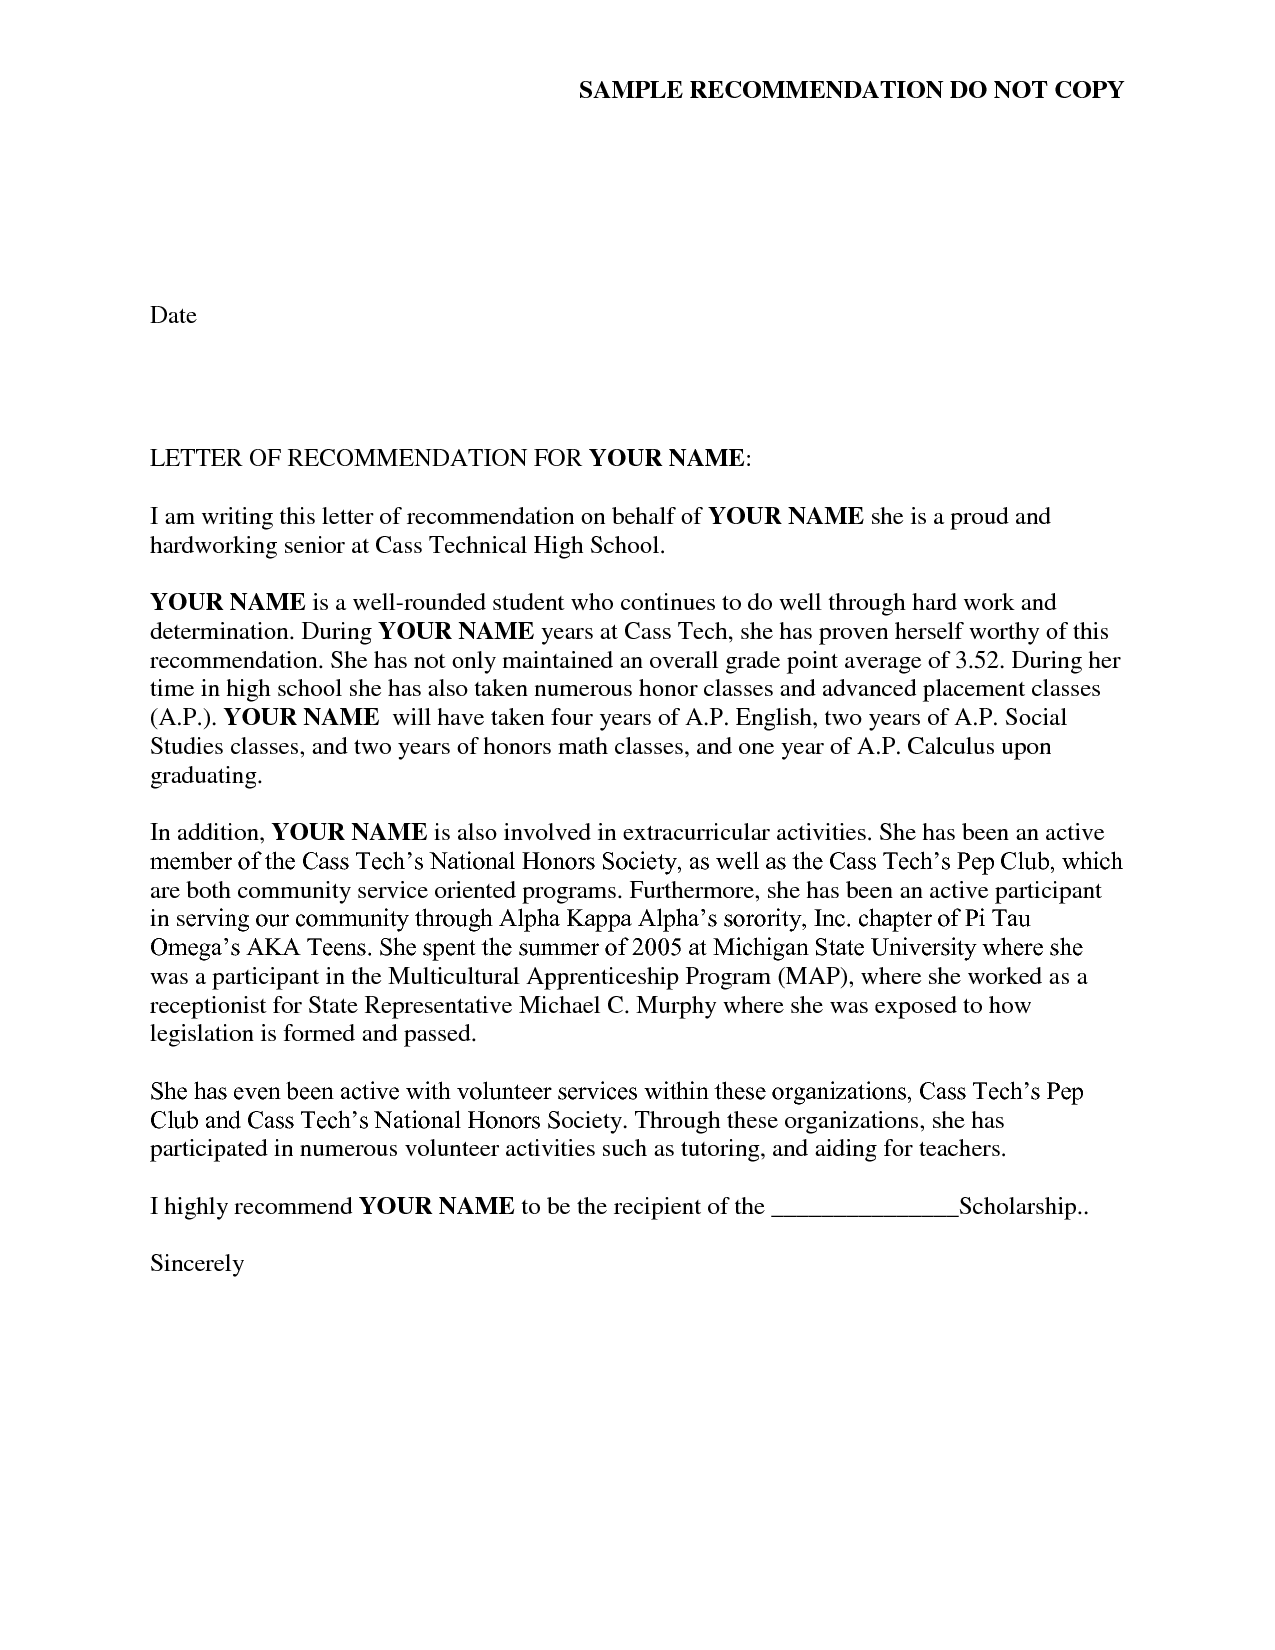 Reference Letter of Recommendation Sample – Letter of Recommendations